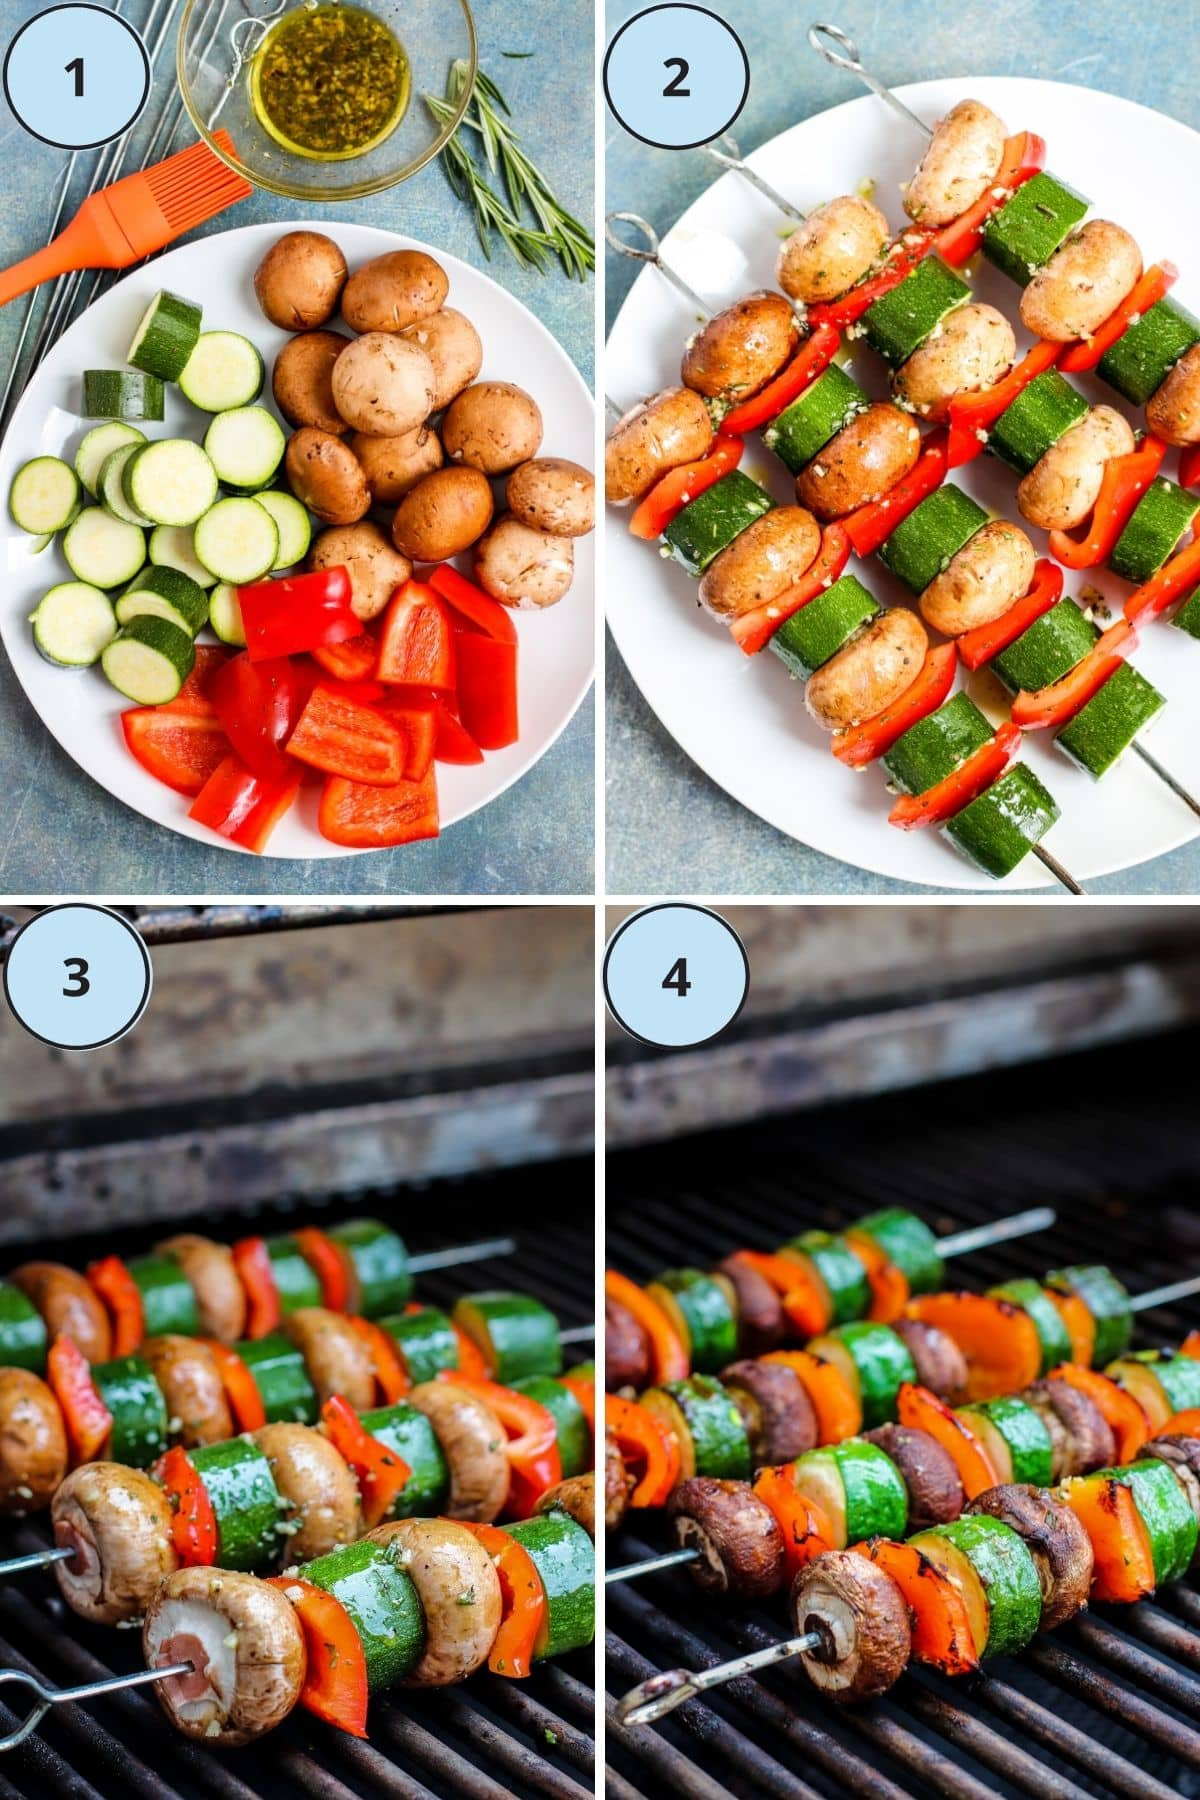 Collage of 4 images showing how to make this recipe